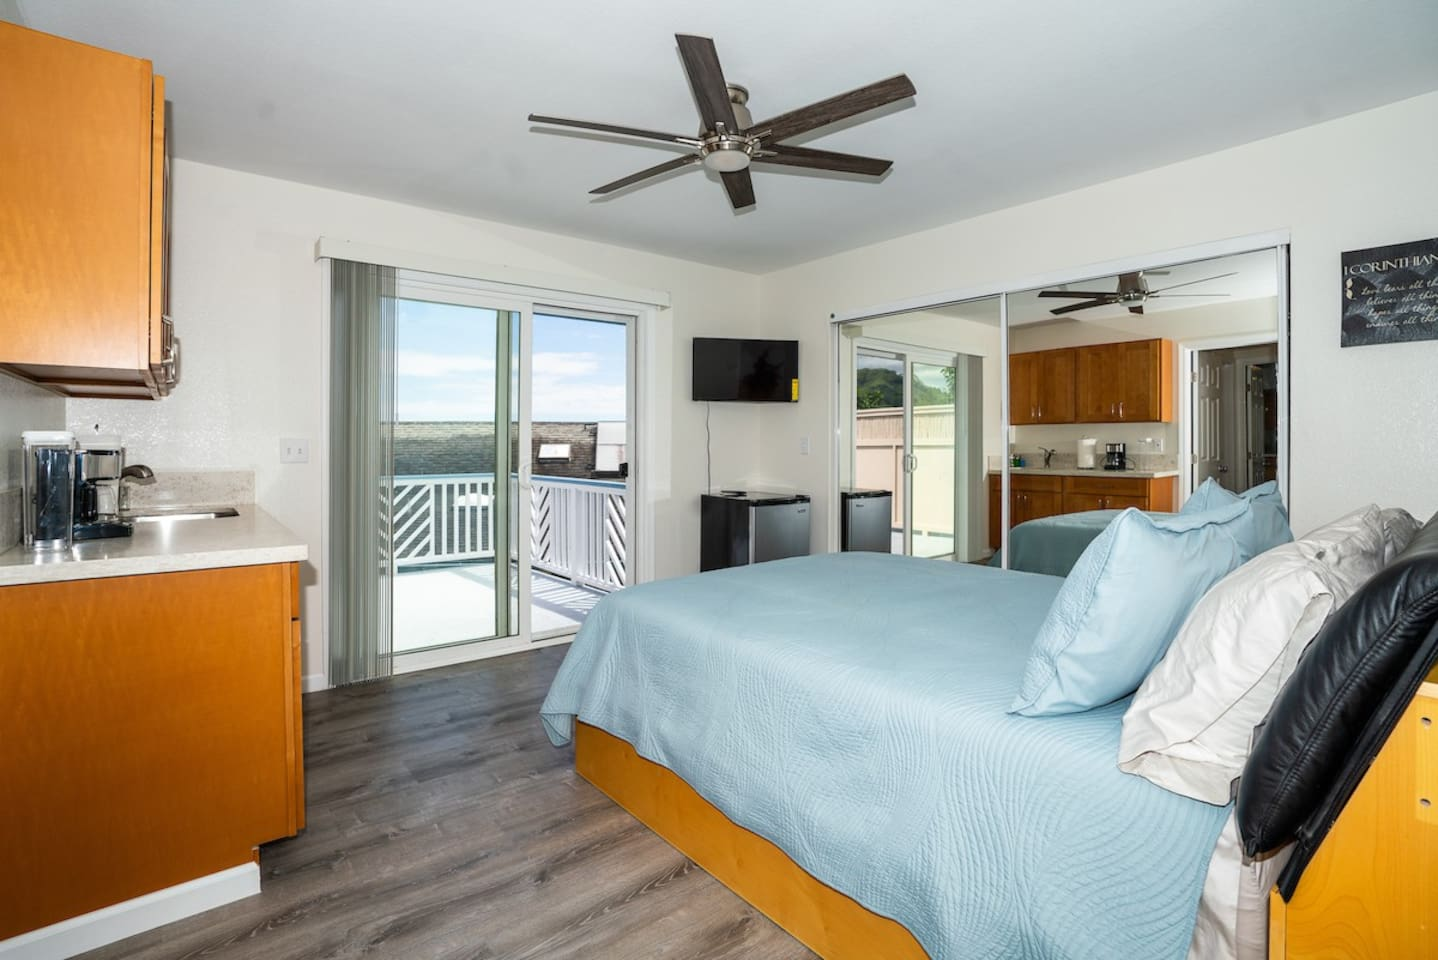 Room 4 with queen size bed, AC, full wet-bar & private lanai.